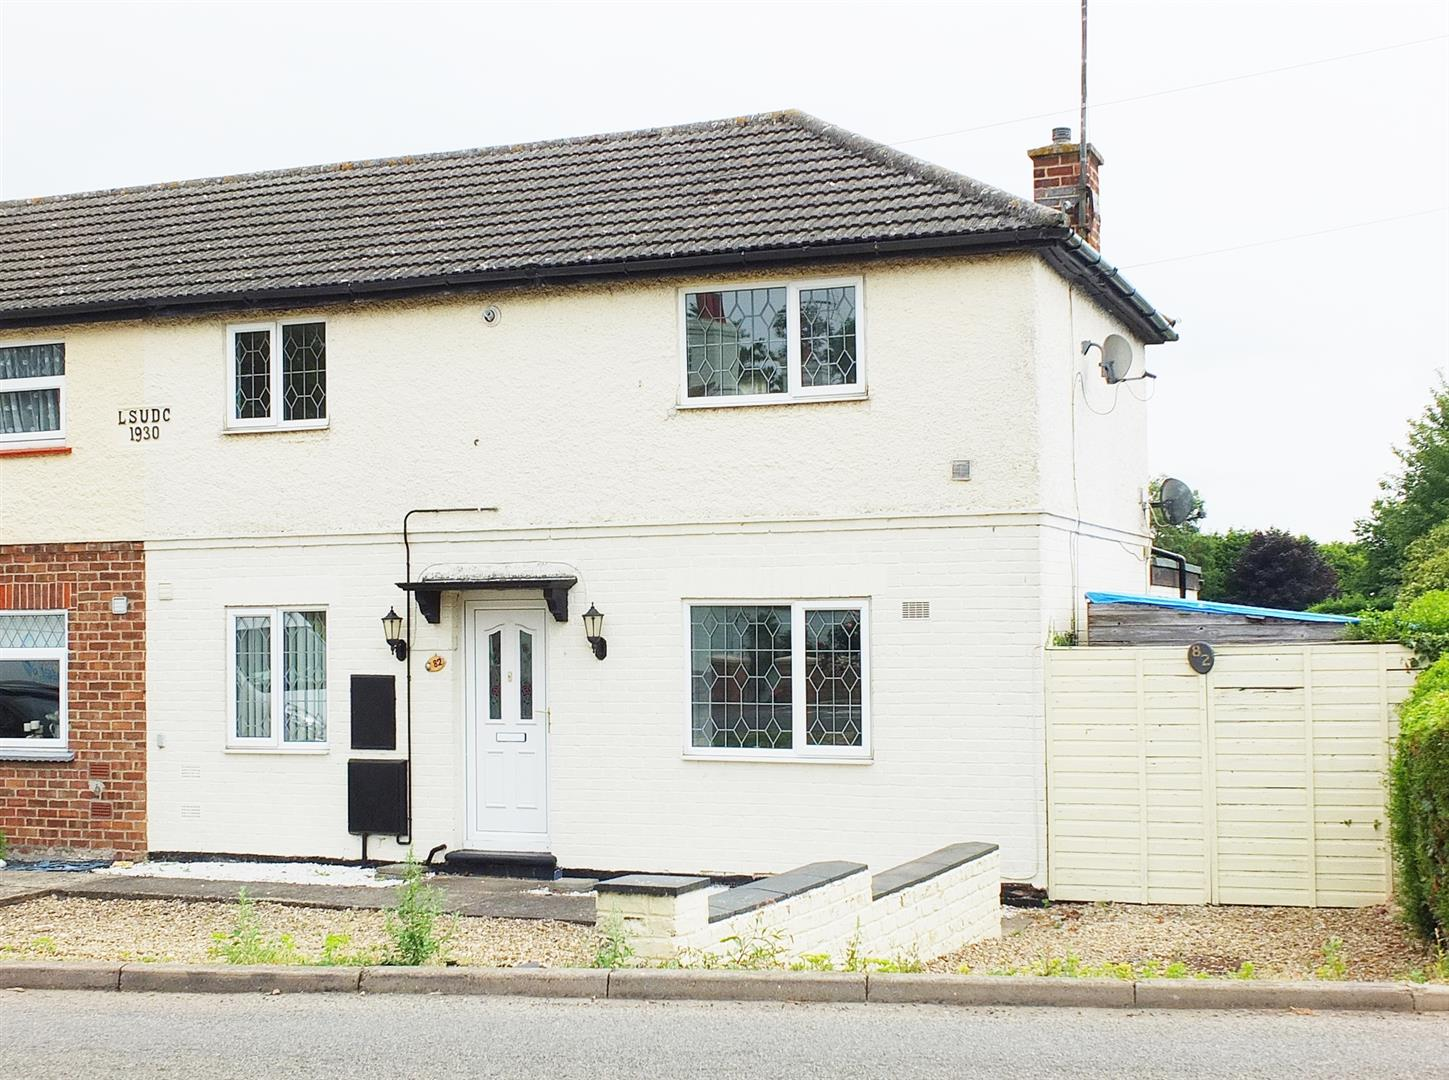 3 bed house for sale in Roman Bank, Long Sutton Spalding, PE12